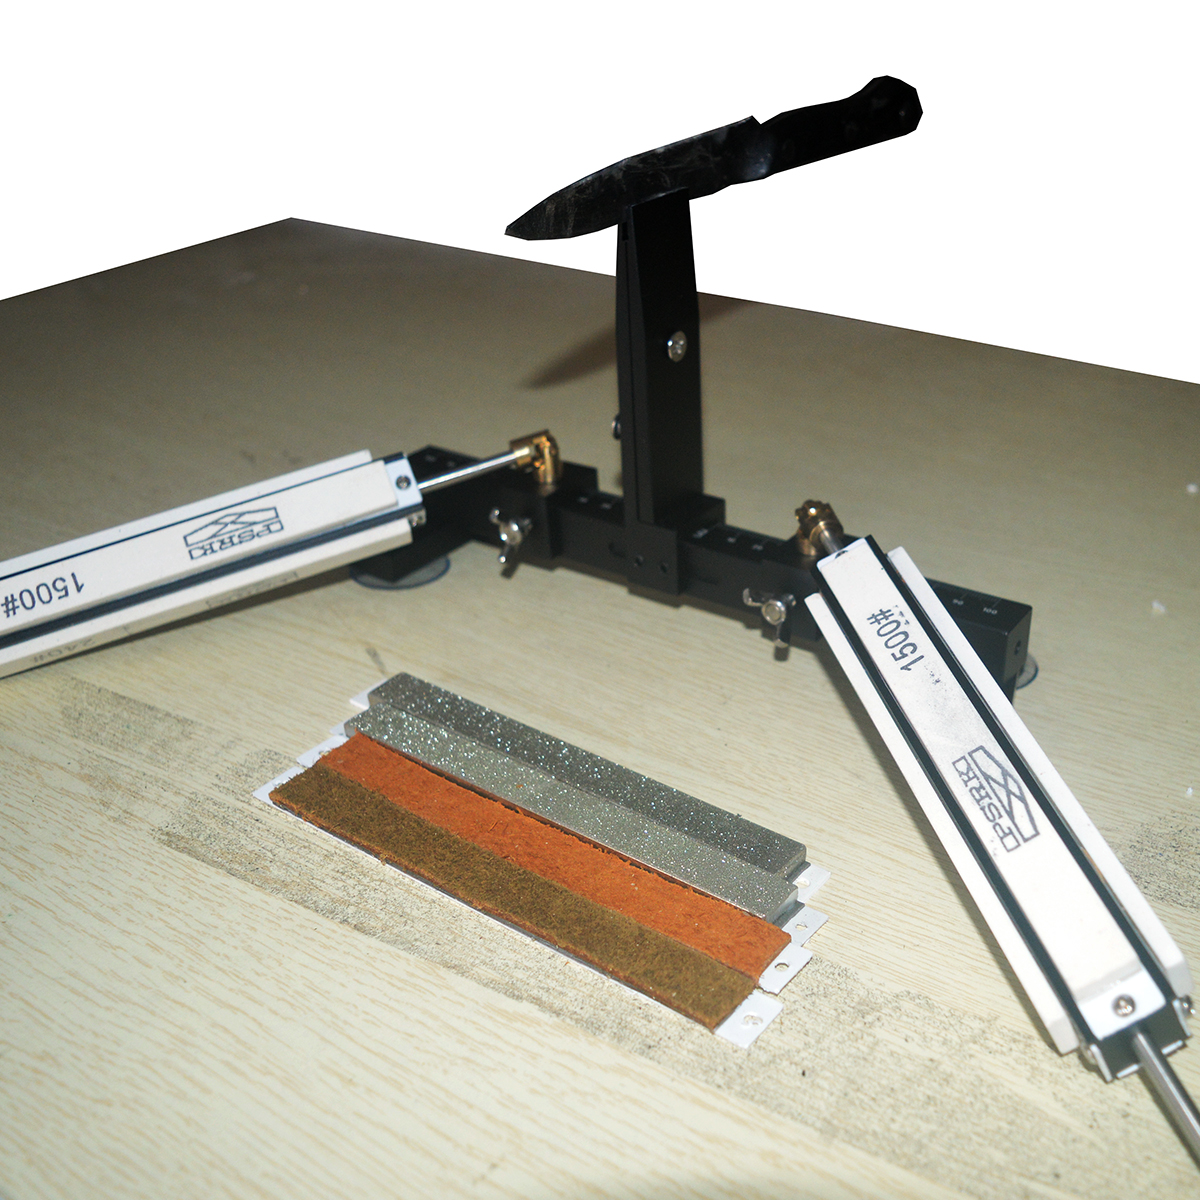 New Knife sharpener Sharpening System Wicked Edge Precision Knife Sharpener Sharpens and diamond Hones water stone leather